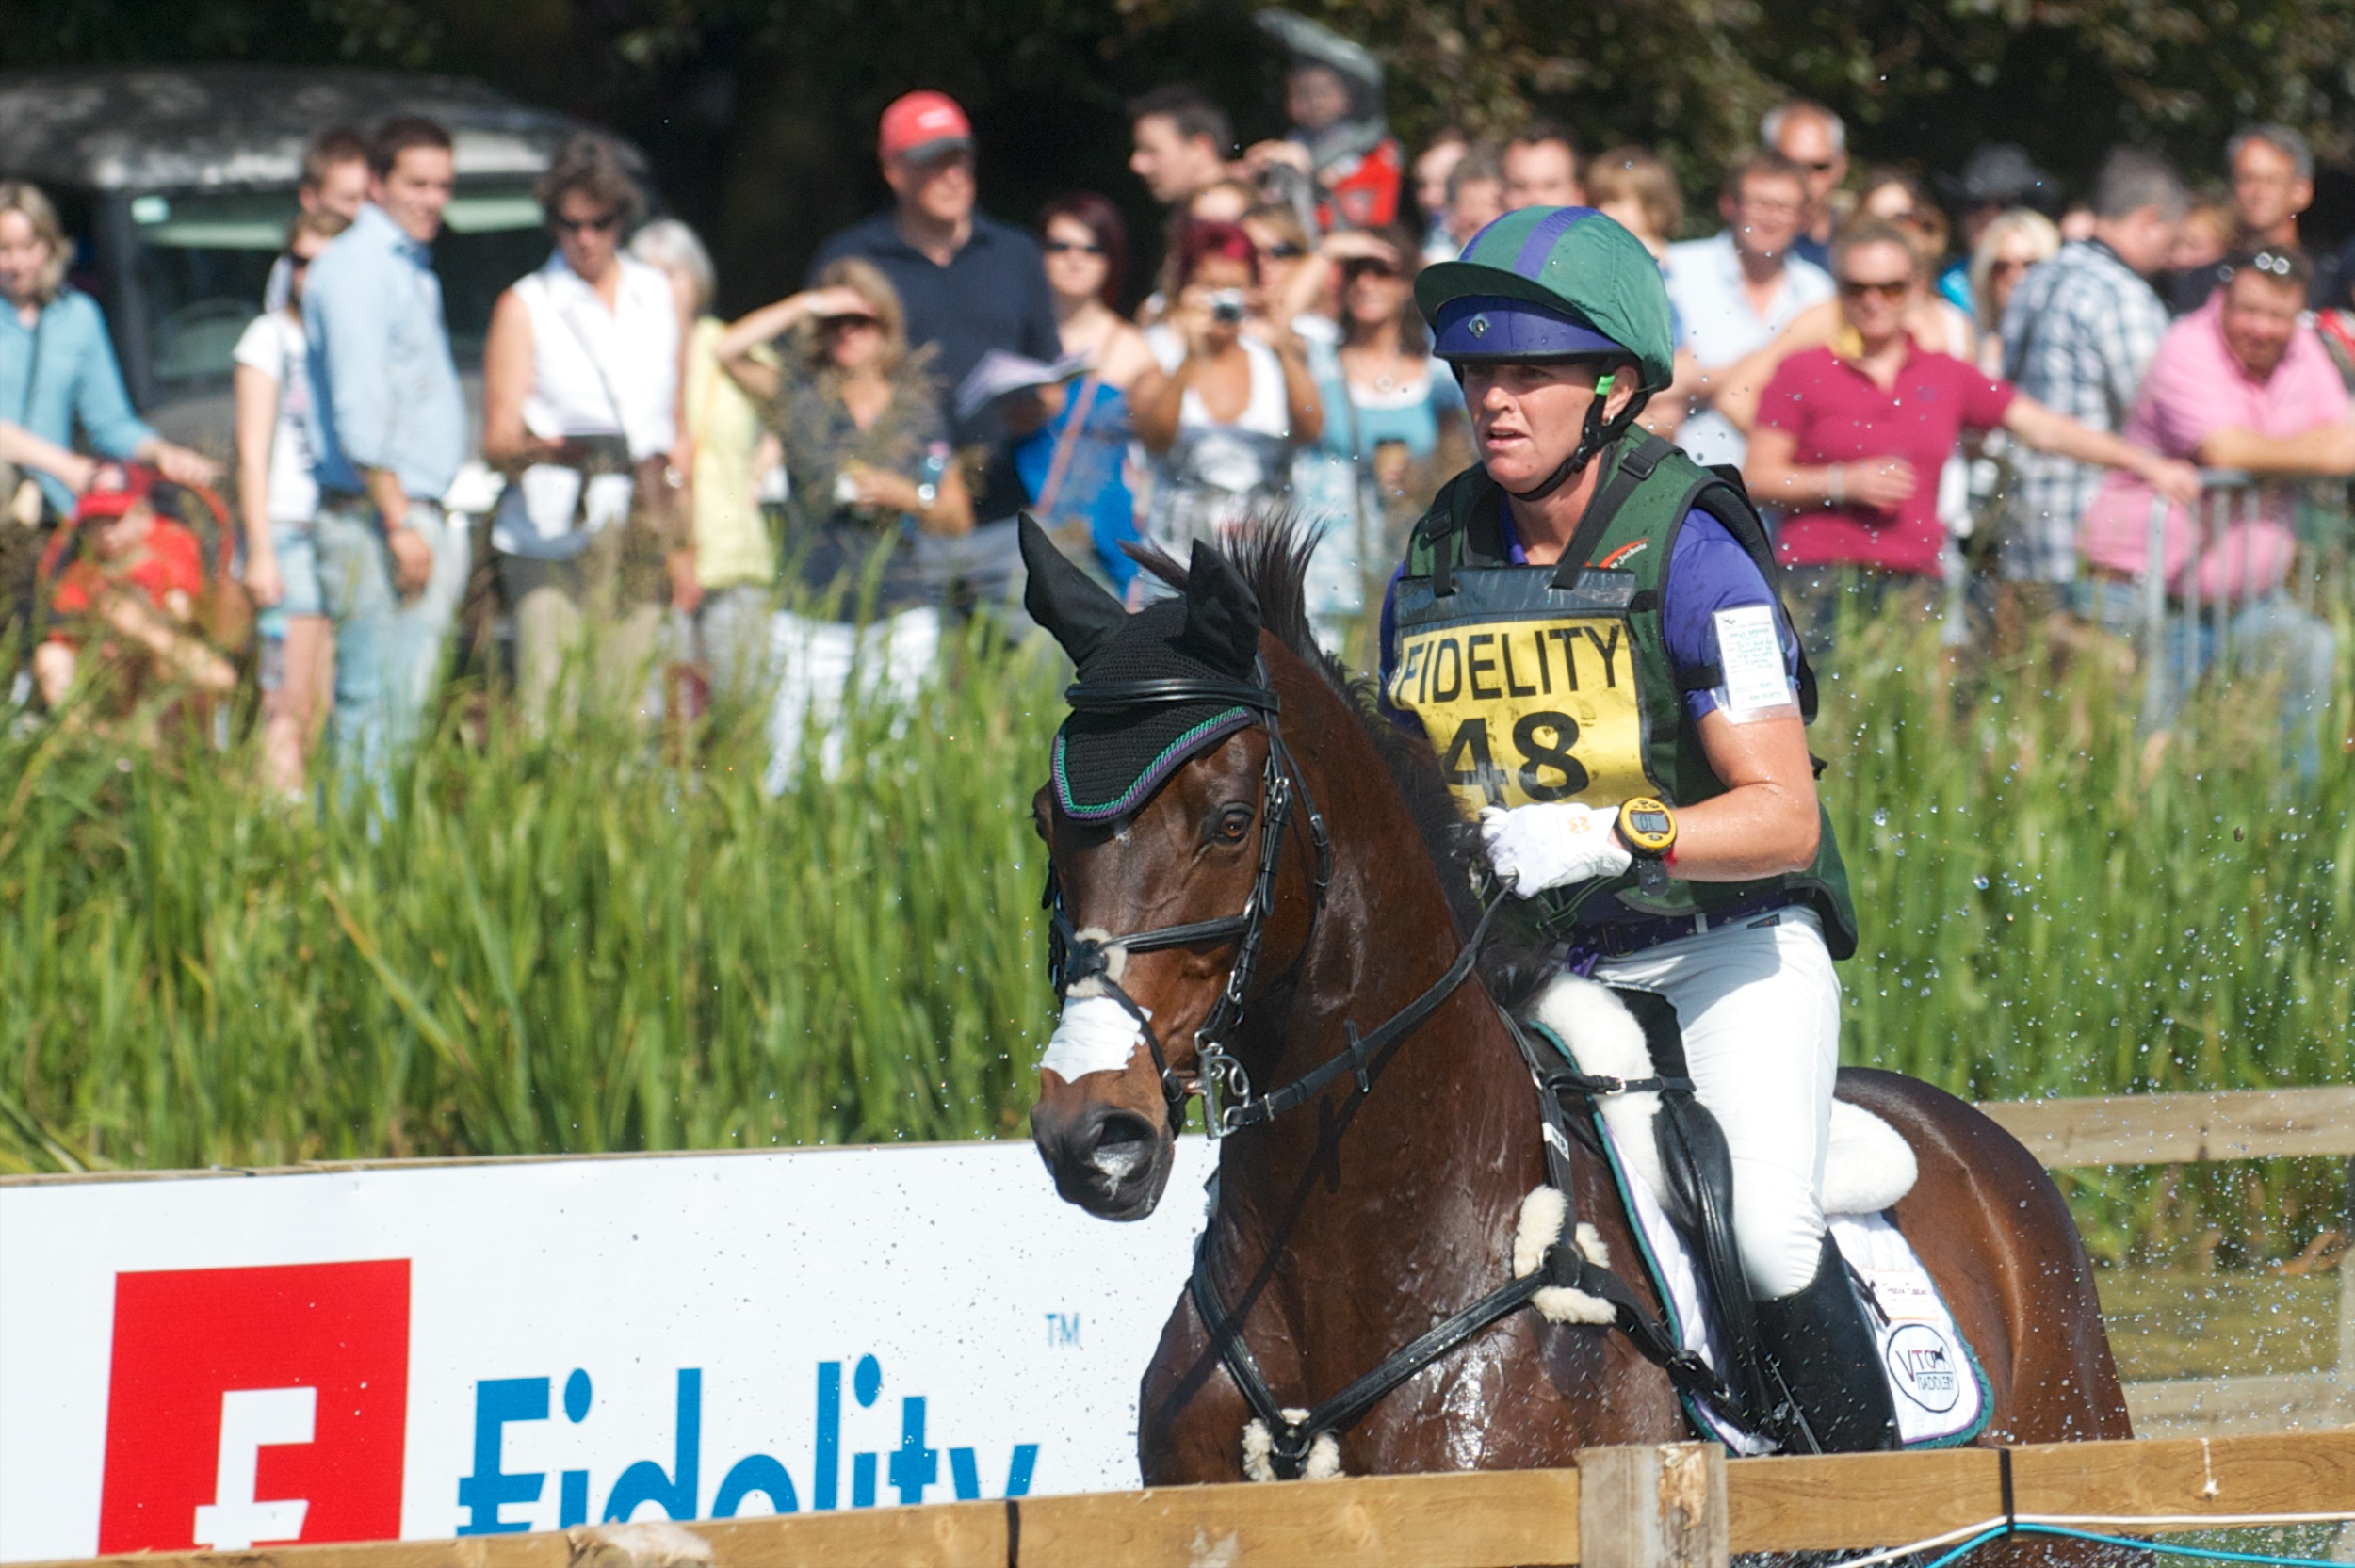 Emily Beshear, One of Many American Riders Entered For Blenheim This Year